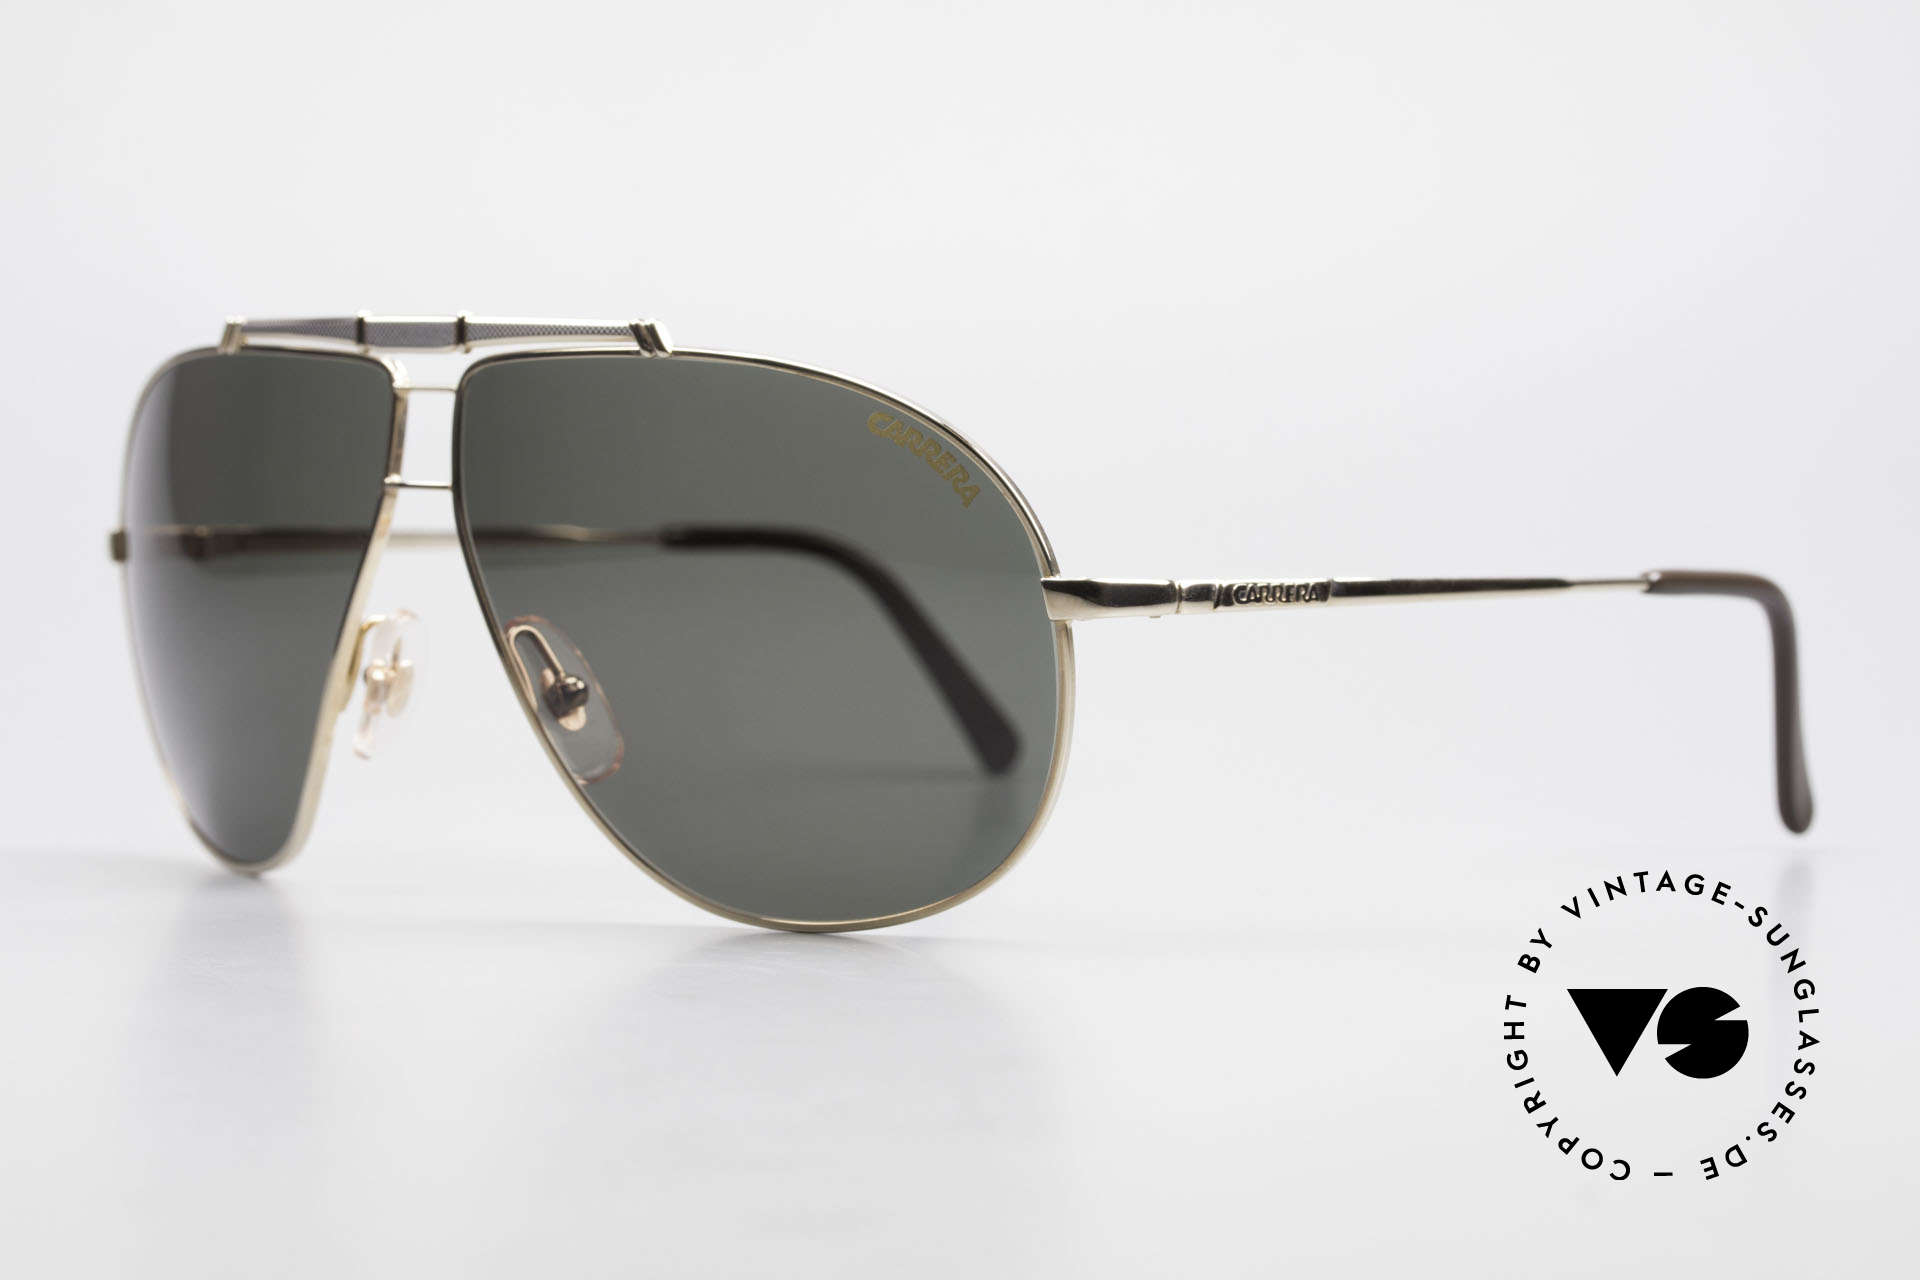 Carrera 5401 Large Aviator Shades Extra Lenses, top craftsmanship and noble frame finish in gold/titan, Made for Men